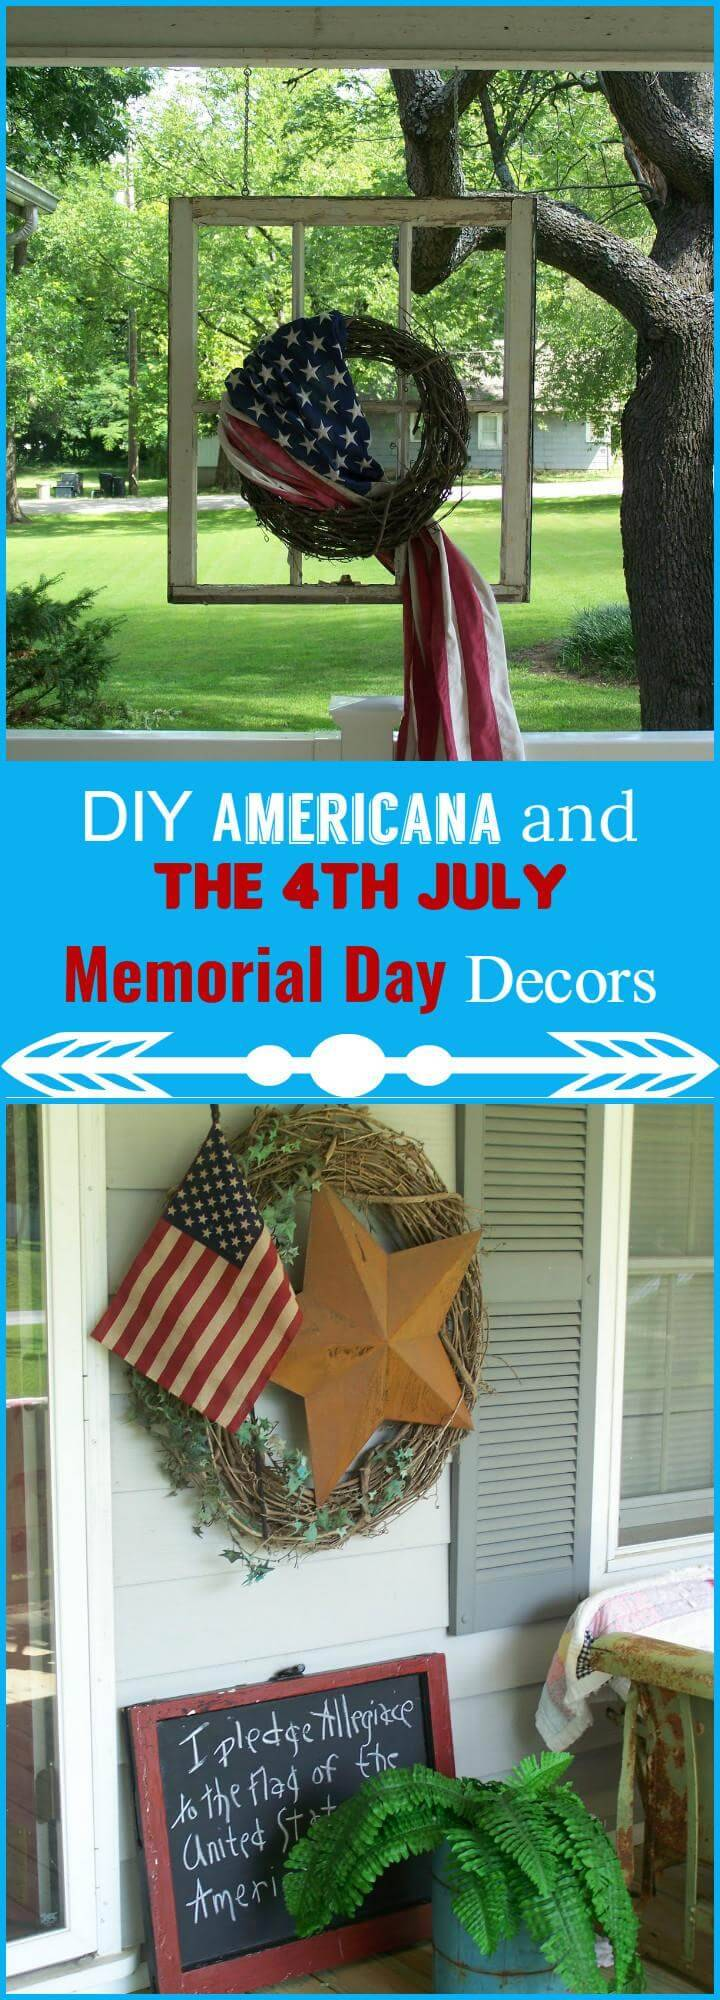 DIY Americana and 4th July Memorial Day Decors